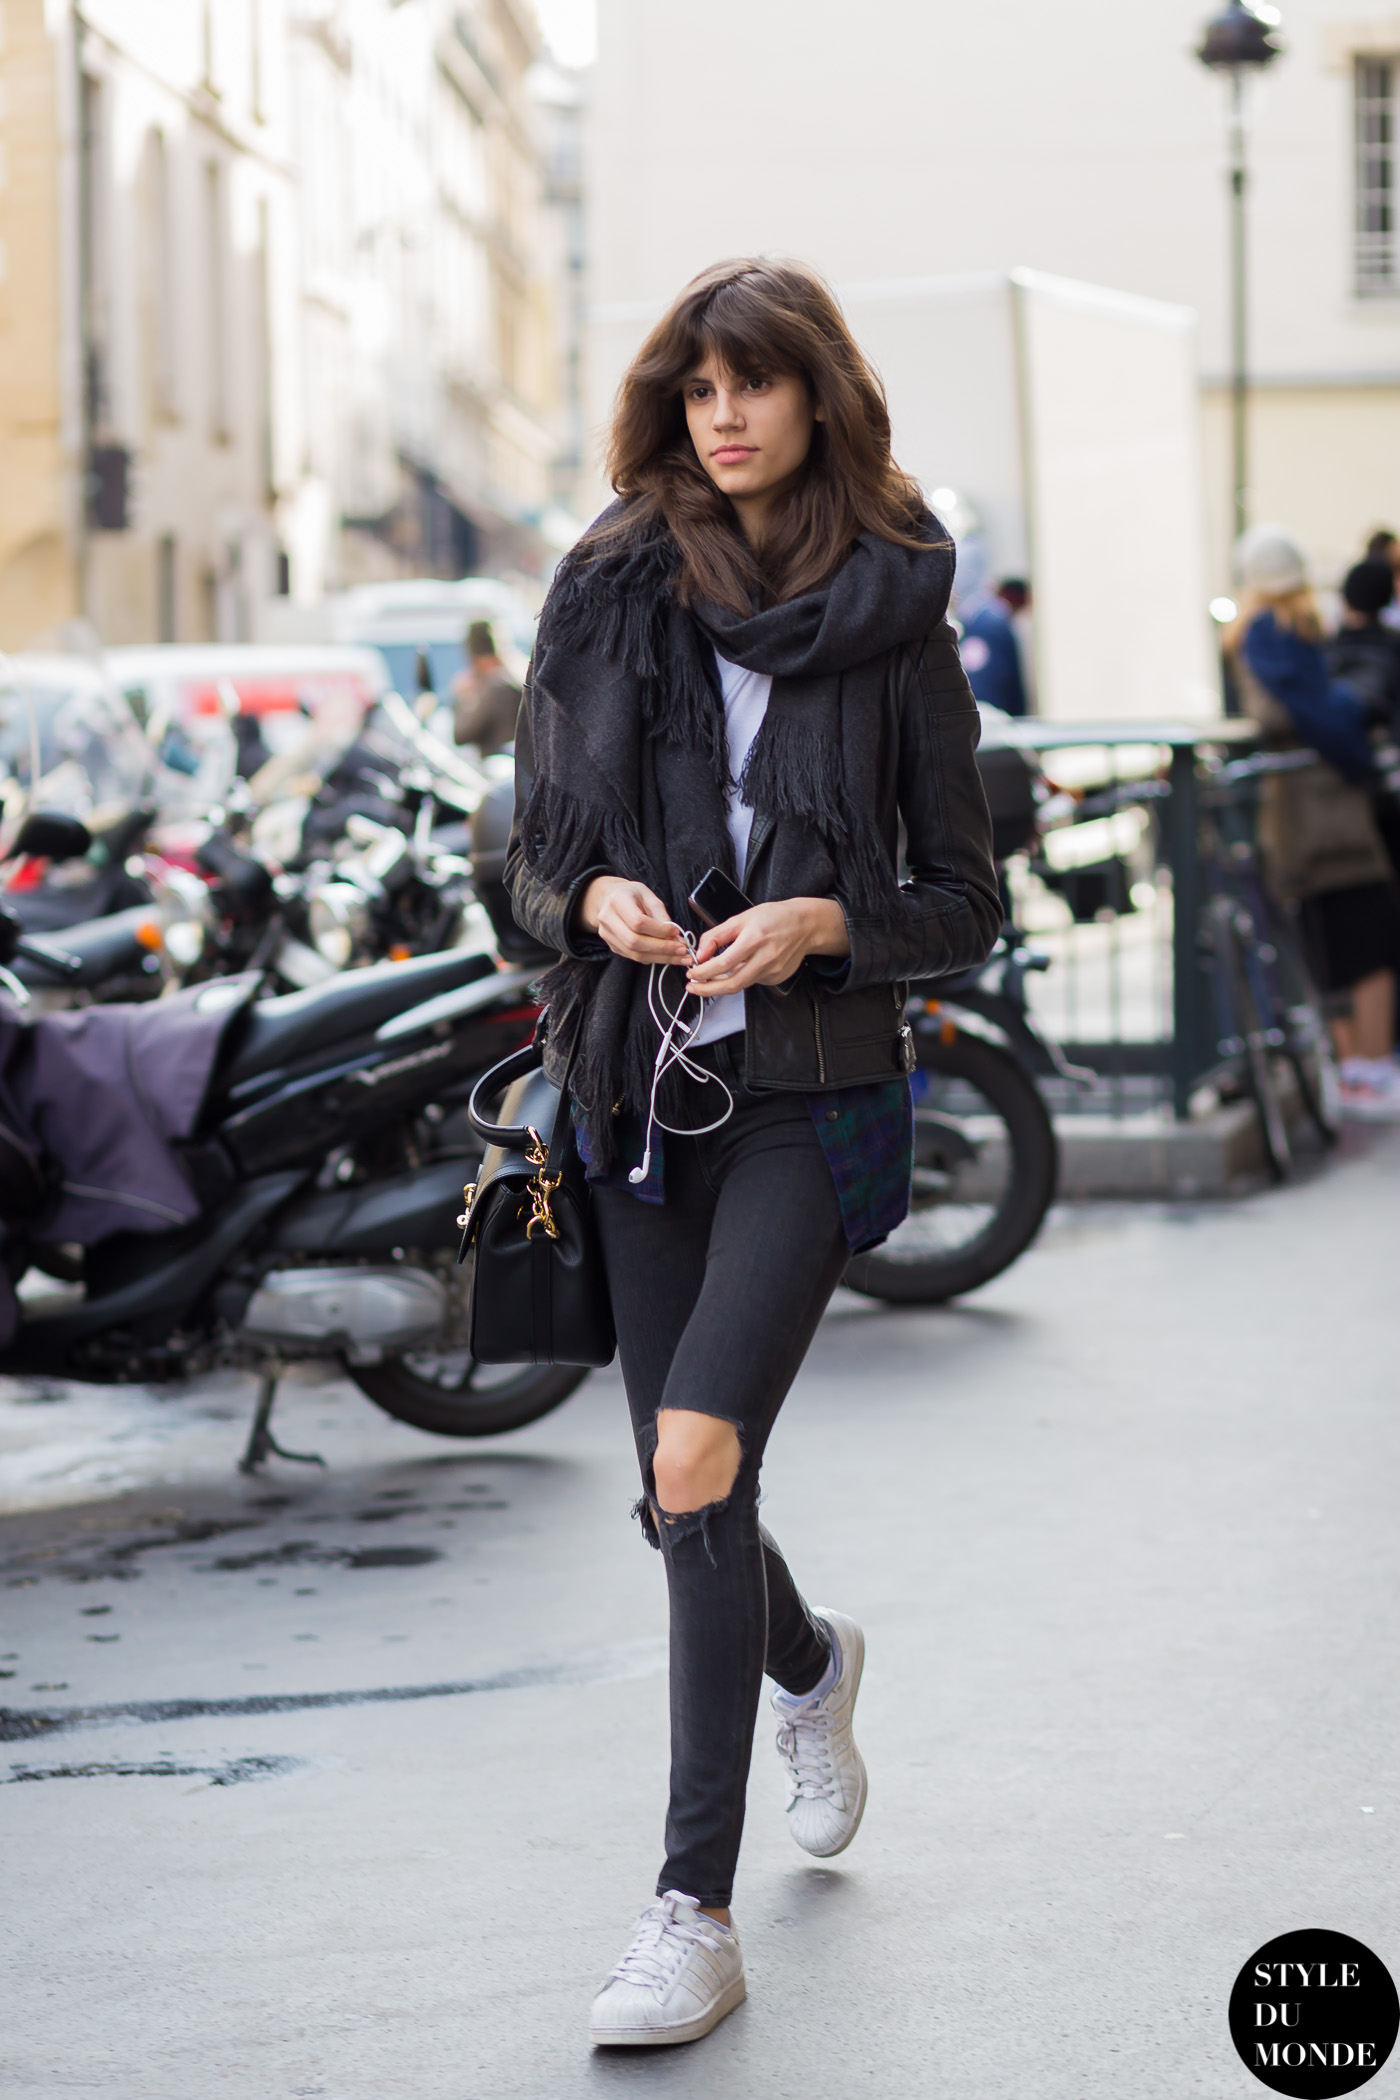 Antonina Petkovic Street Style Street Fashion Streetsnaps by STYLEDUMONDE Street Style Fashion Blog